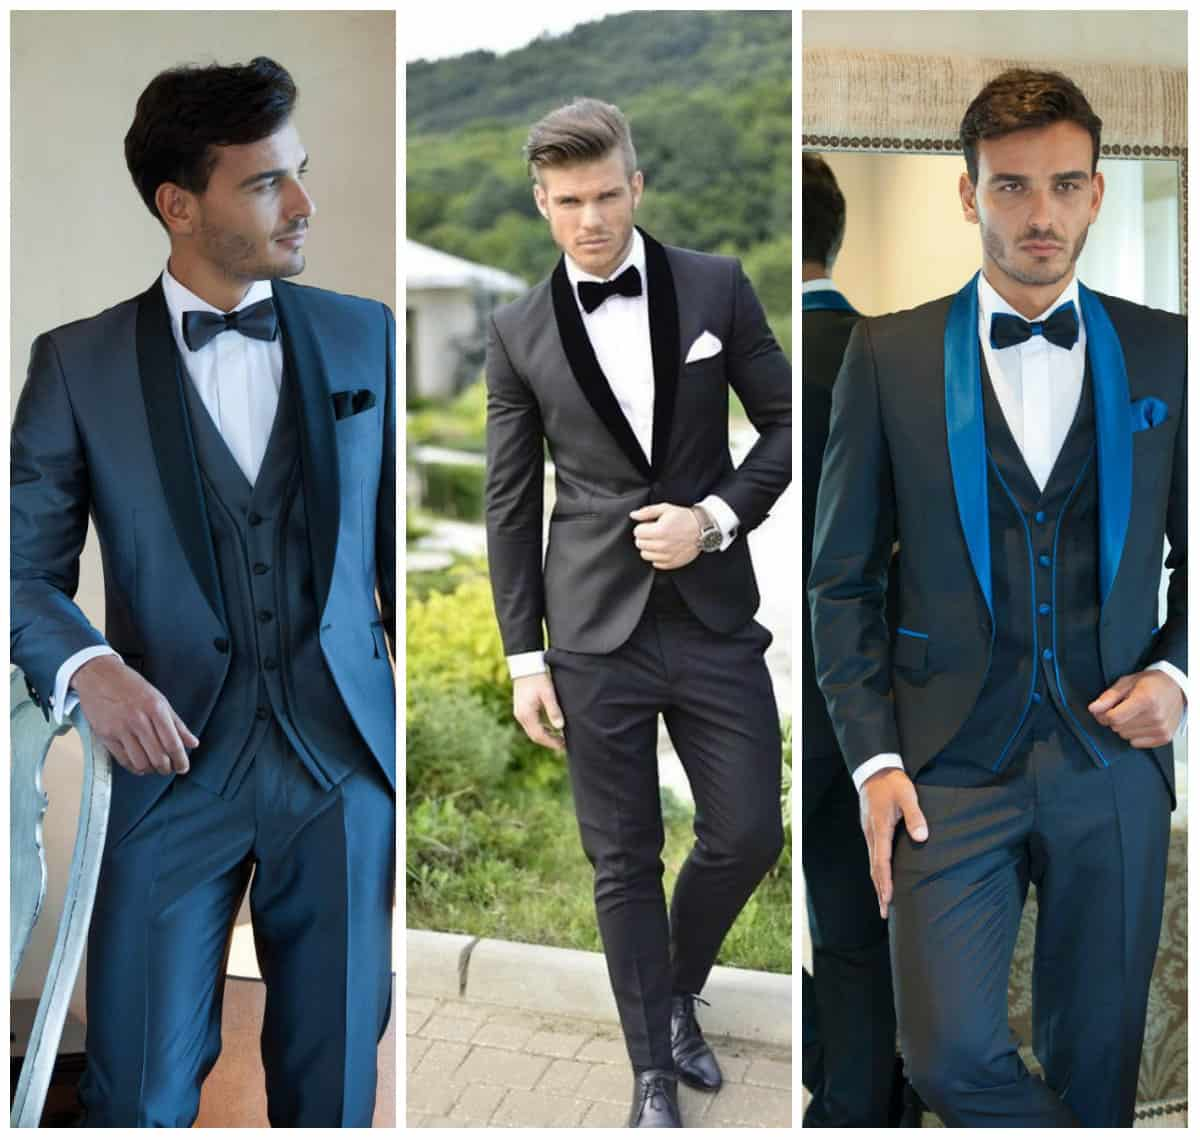 Men-wedding-suits-trends-2016-8